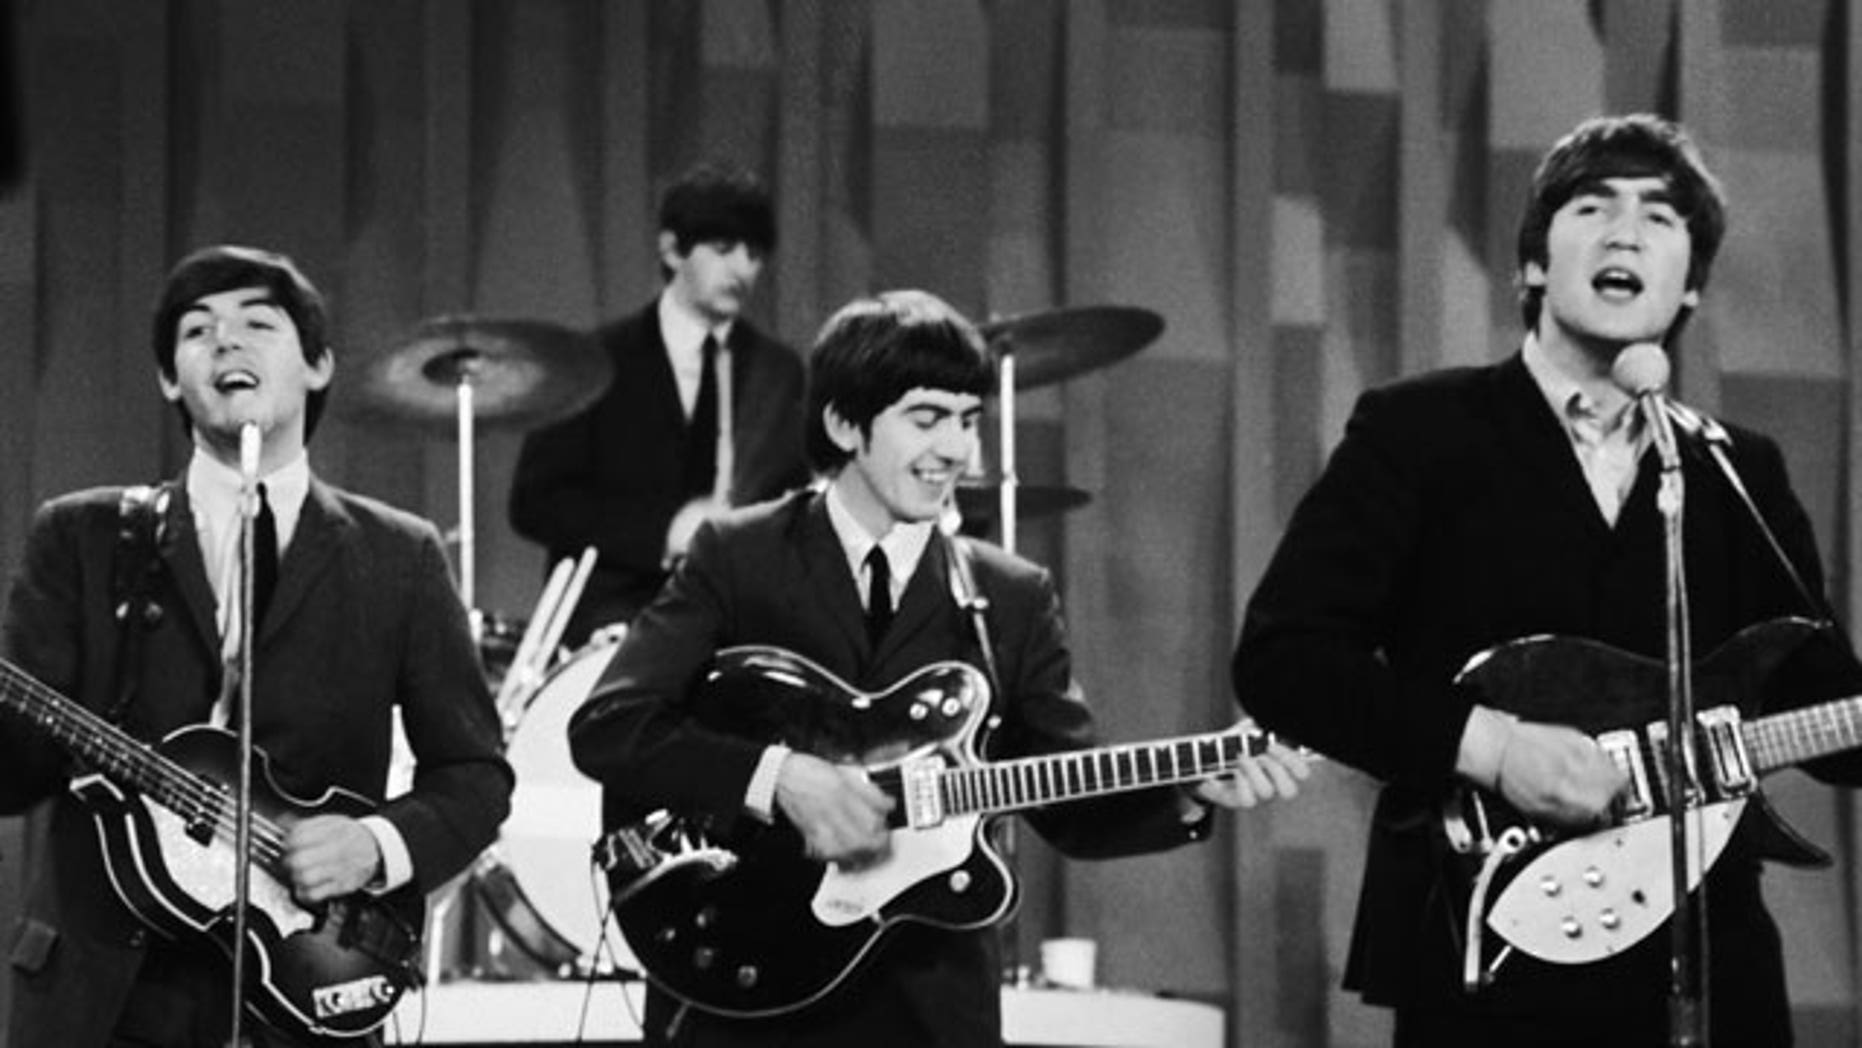 """In this Feb. 9, 1964 file photo, The Beatles  perform on the CBS """"Ed Sullivan Show"""" in New York. Ringo Starr plays drums, rear, and playing guitars from left are Paul McCartney, George Harrison and John Lennon."""